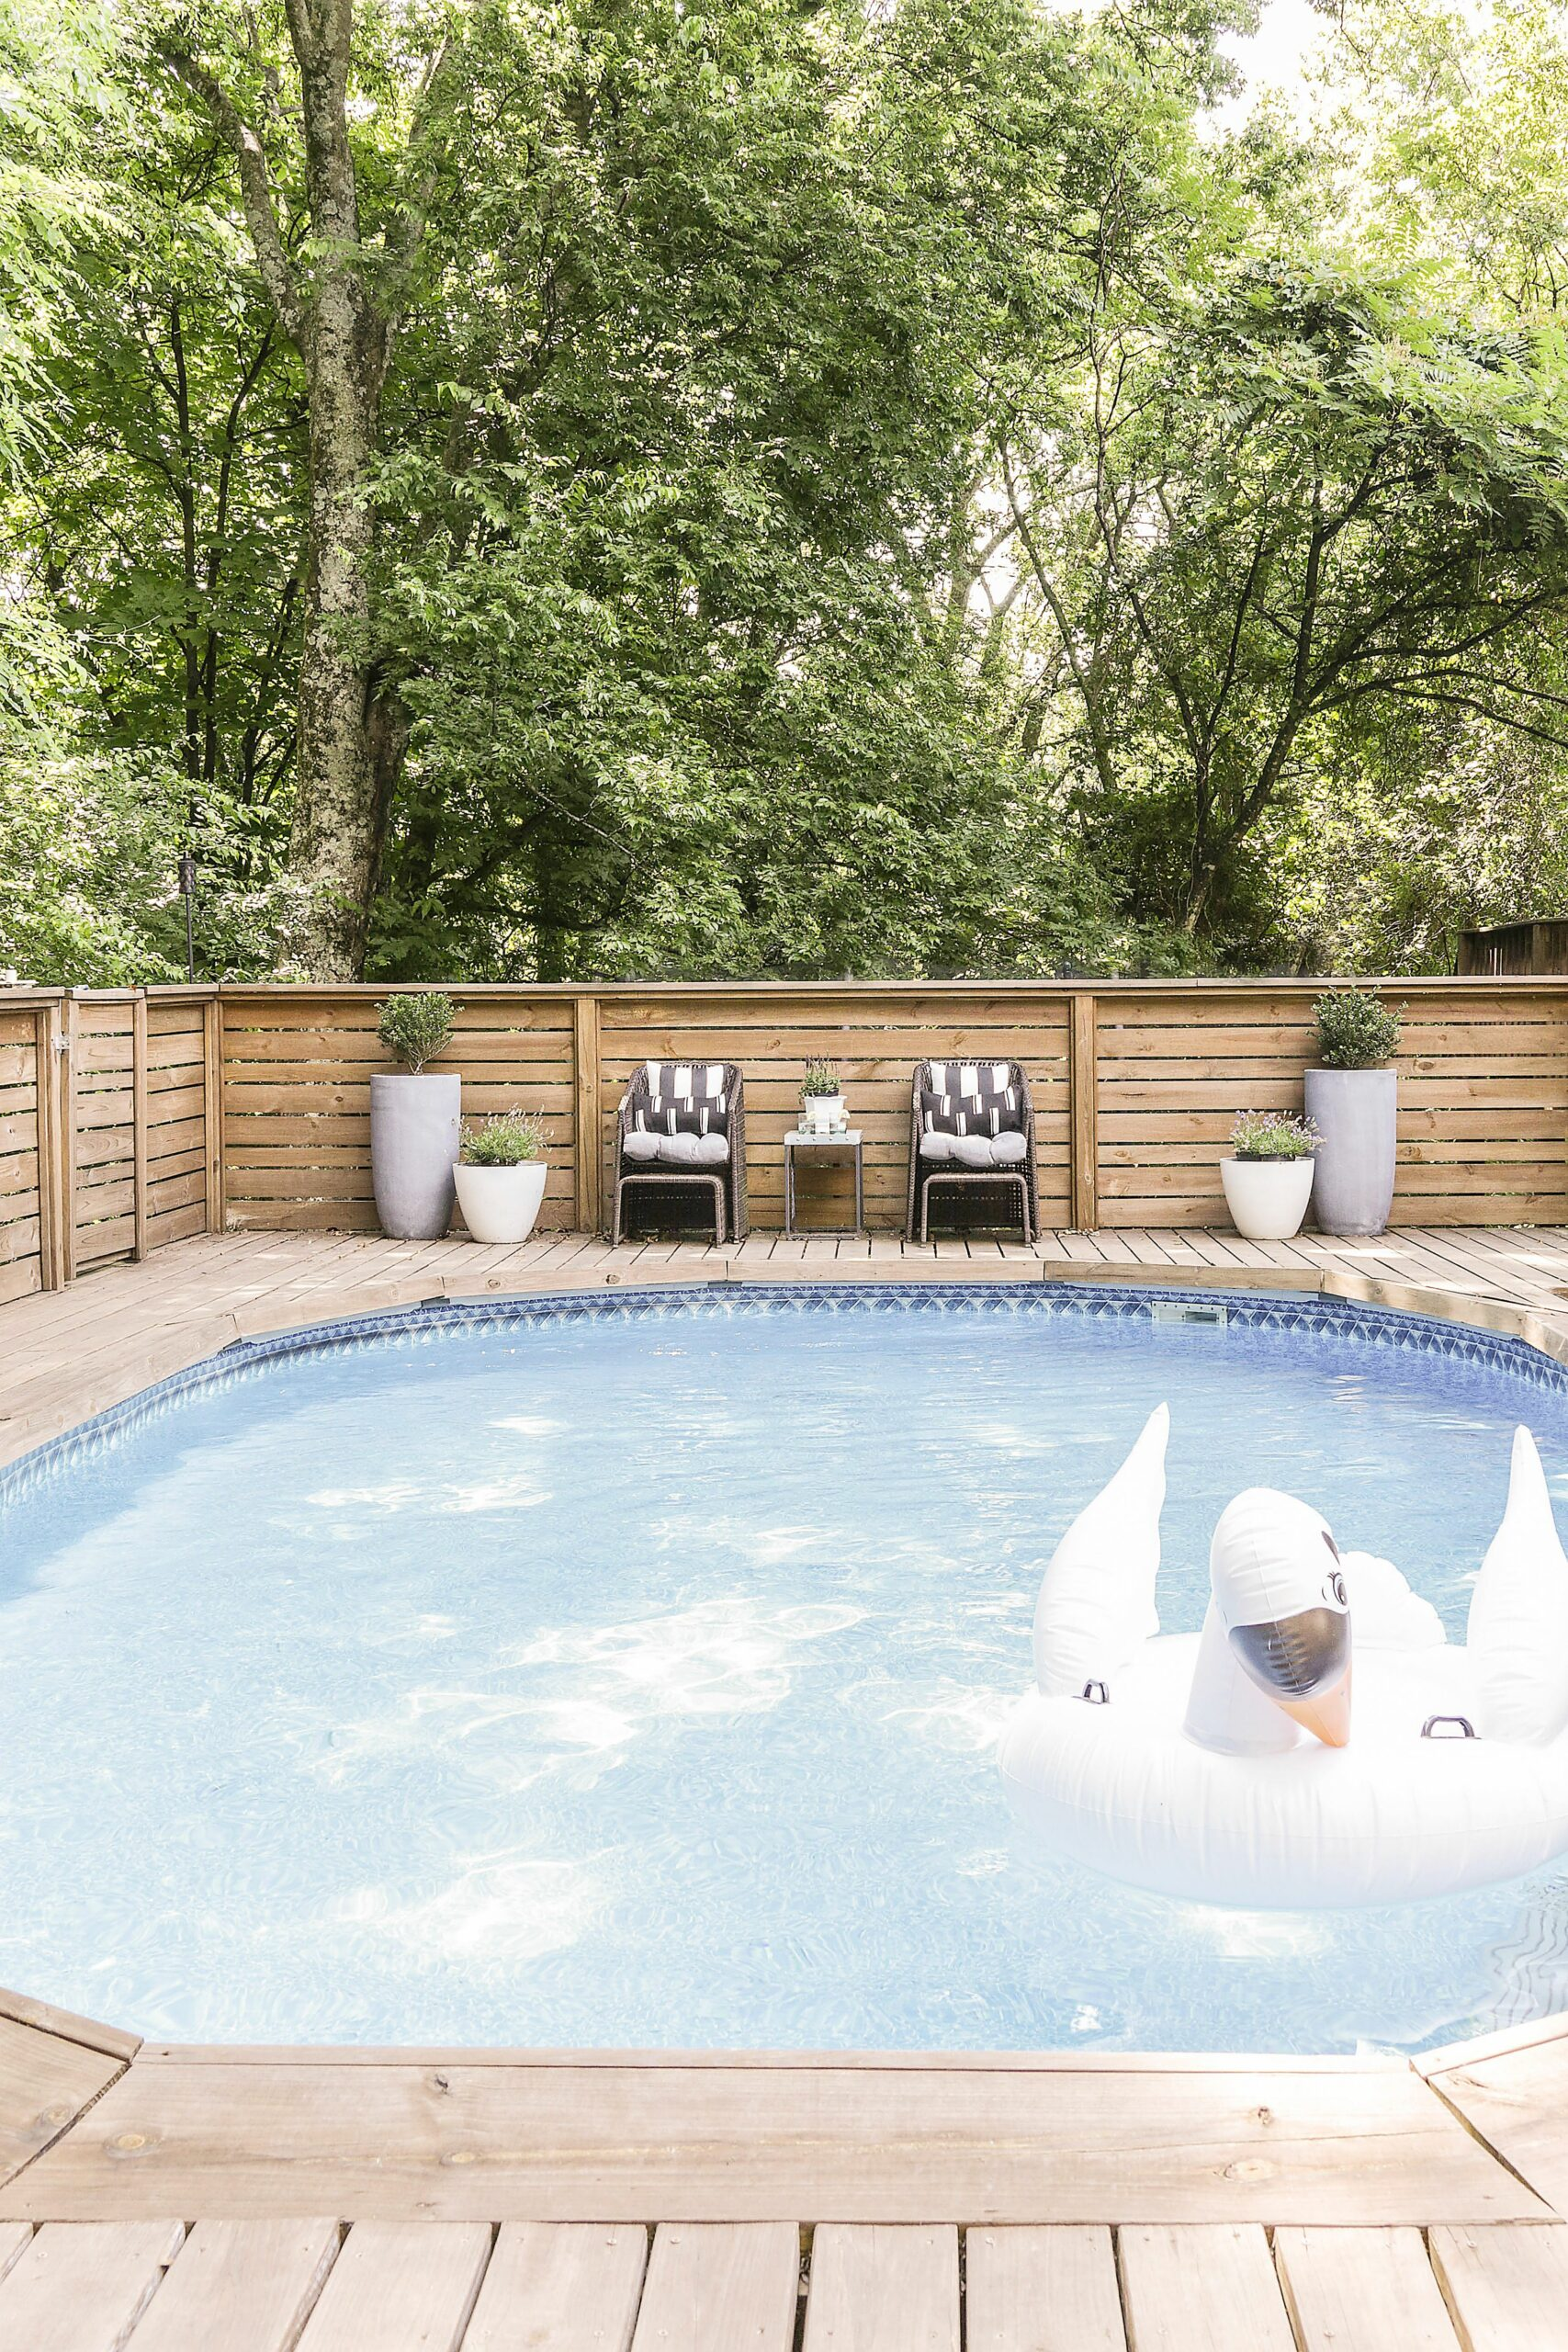 How to Make an Above Ground Pool Look Inground - Pool Deck Ideas - pool update ideas